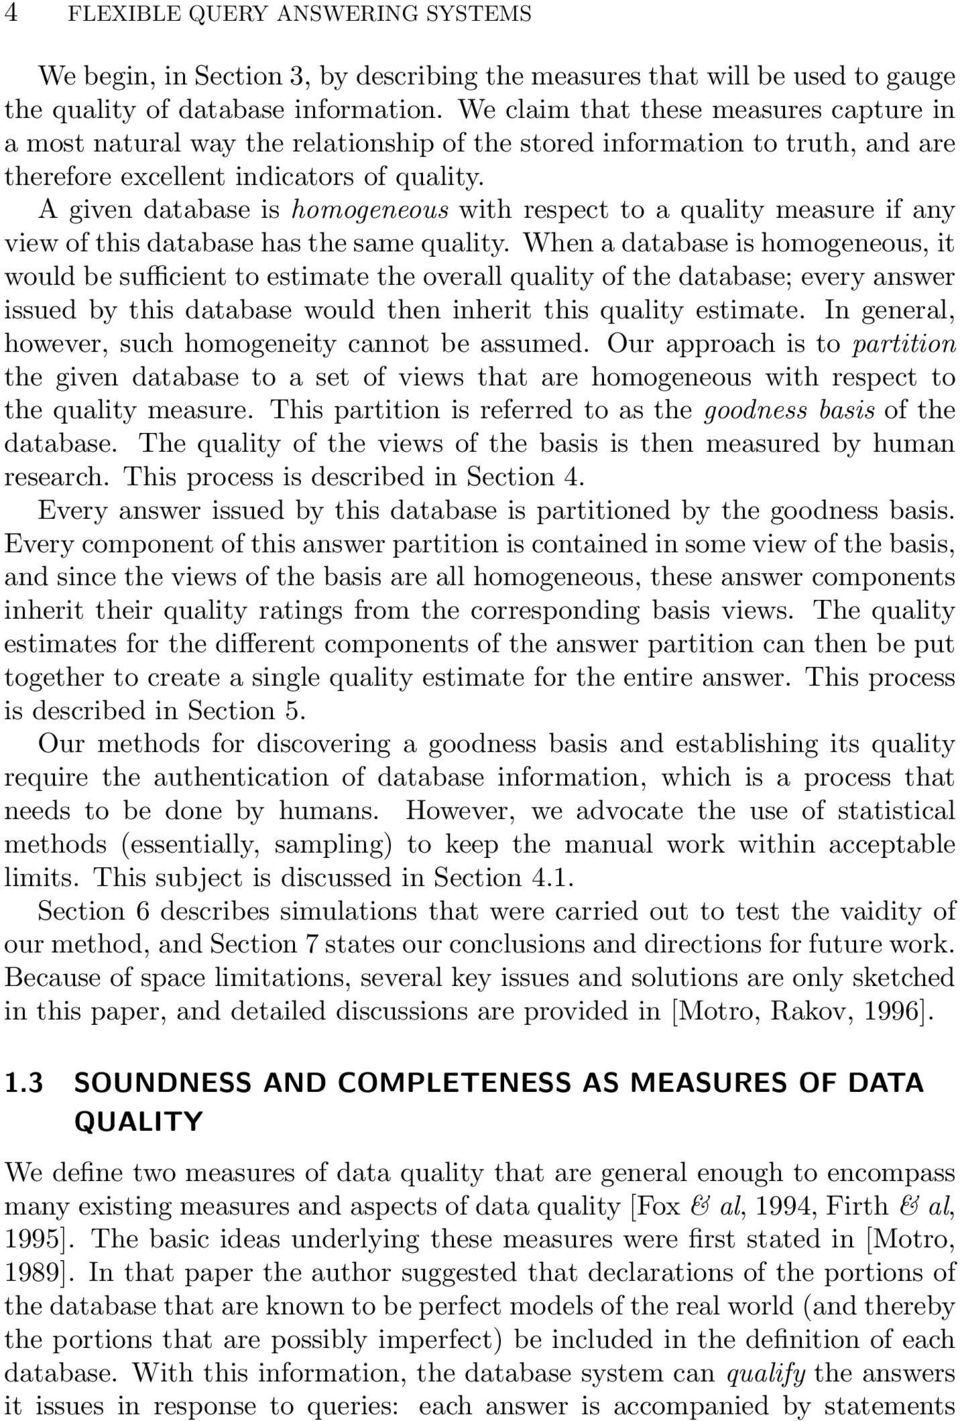 A given database is homogeneous with respect to a quality measure if any view of this database has the same quality.